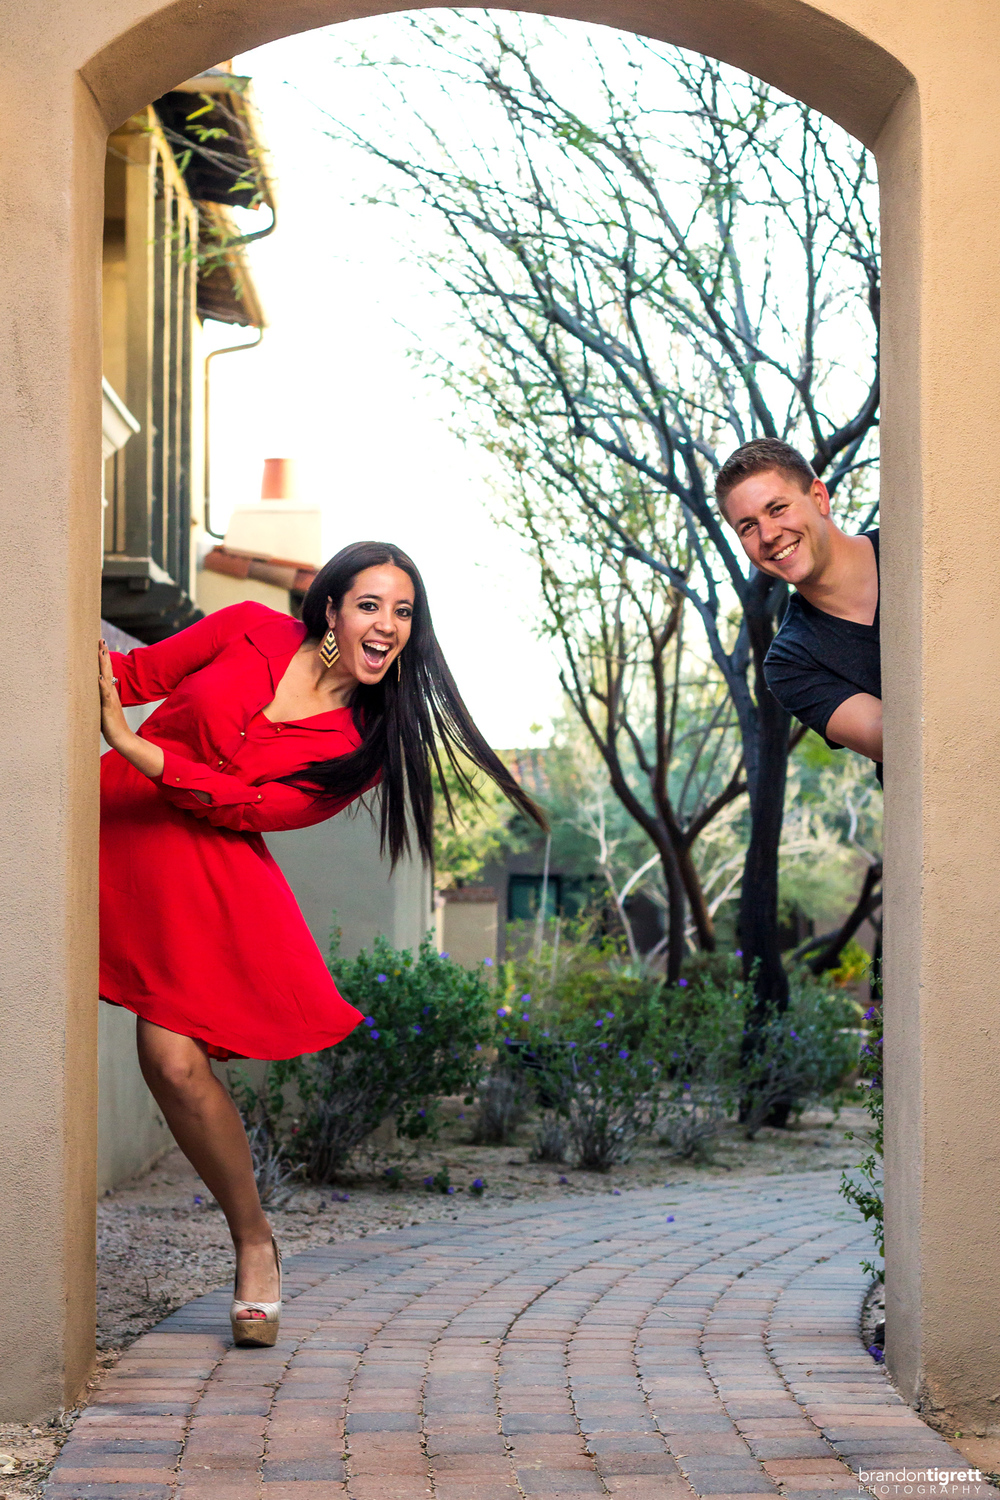 2014_Brandon-Tigrett_Scottsdale_couple_Caraline-Jackson-31_WEB.jpg